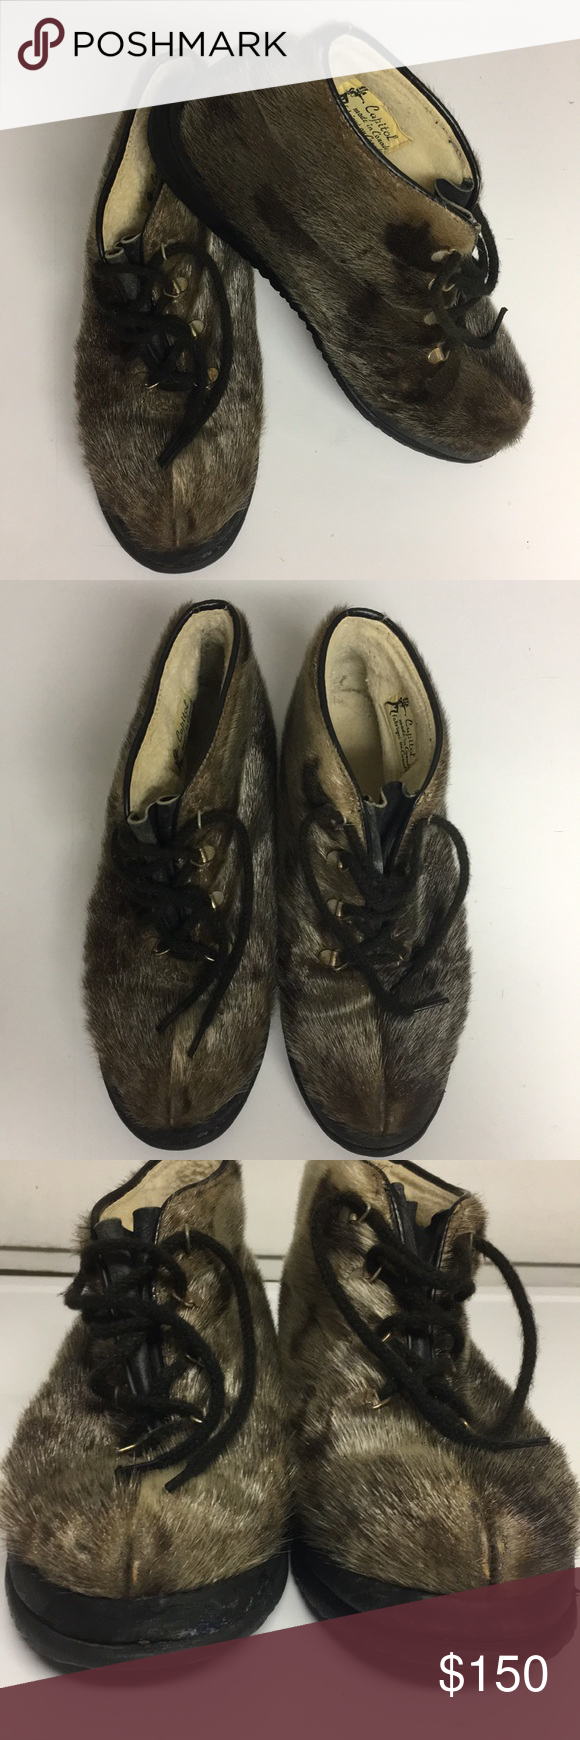 Vintage Capitol Brand Fur Ankle Boots Canada 9 5 Fur Ankle Boots Boots Fur Boots